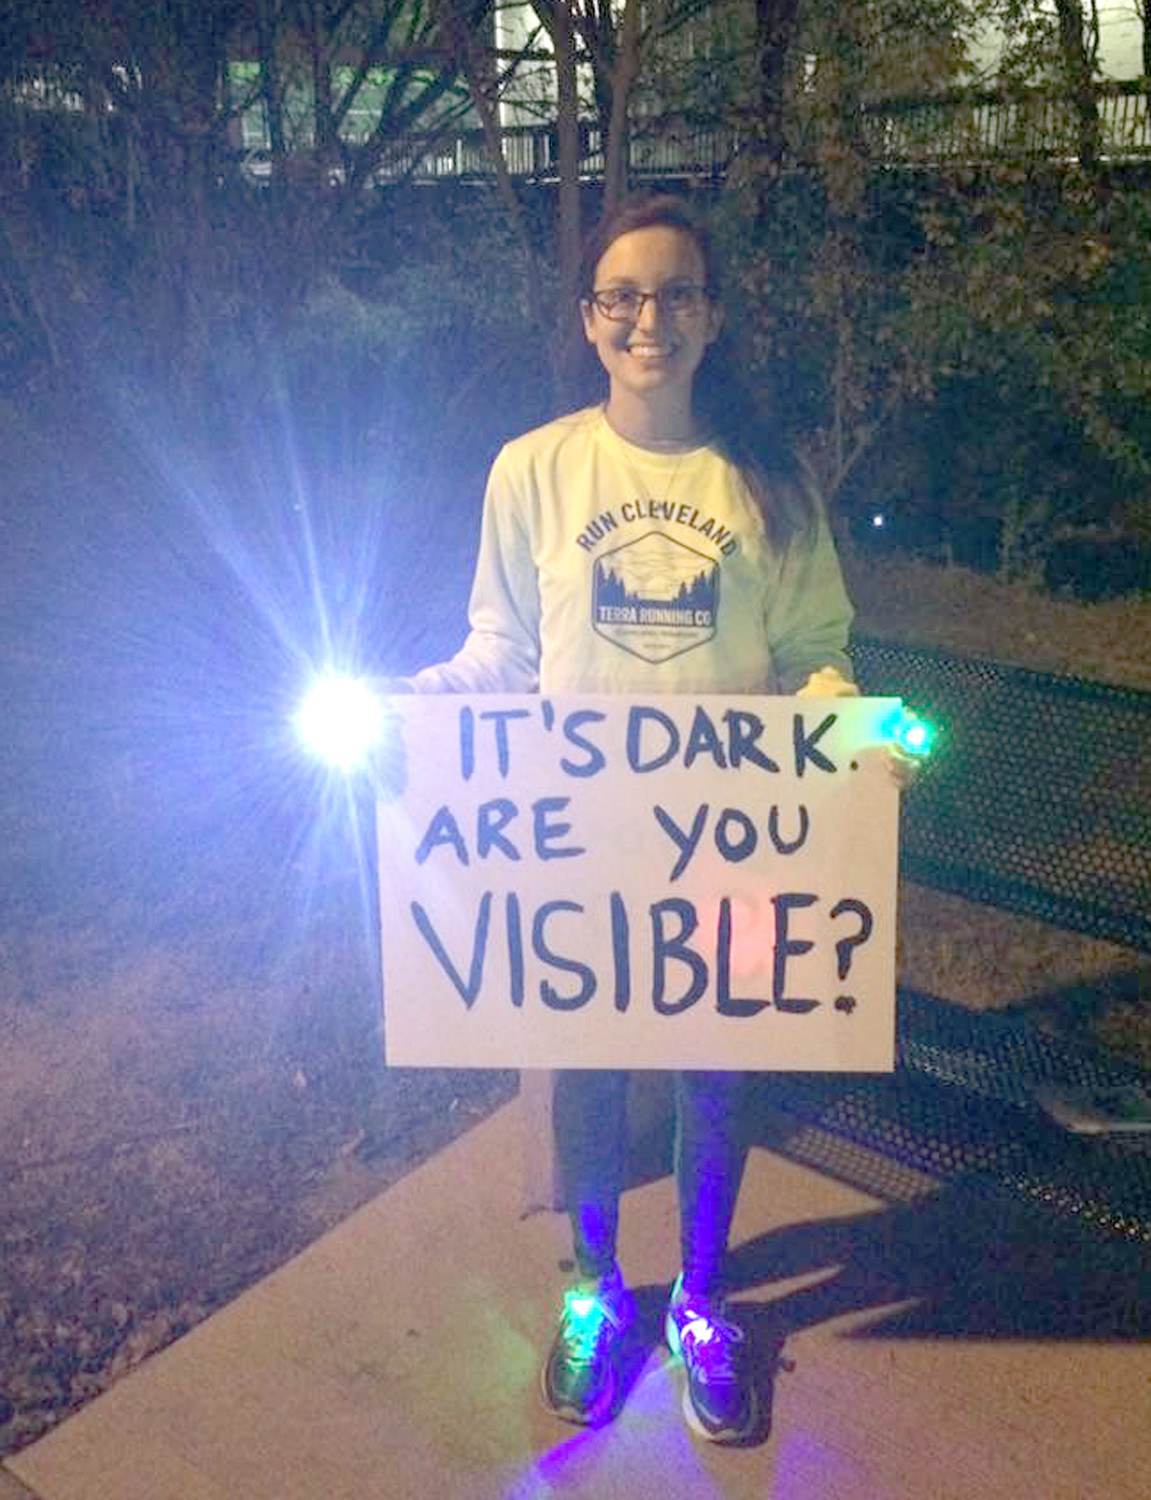 BRITTANY DURKIN reminds runners and walkers there are safe ways to participate in these activities, especially if out on area roadways in the early morning or evening hours. The best safety measure is to make yourself visible to motorists during these times.